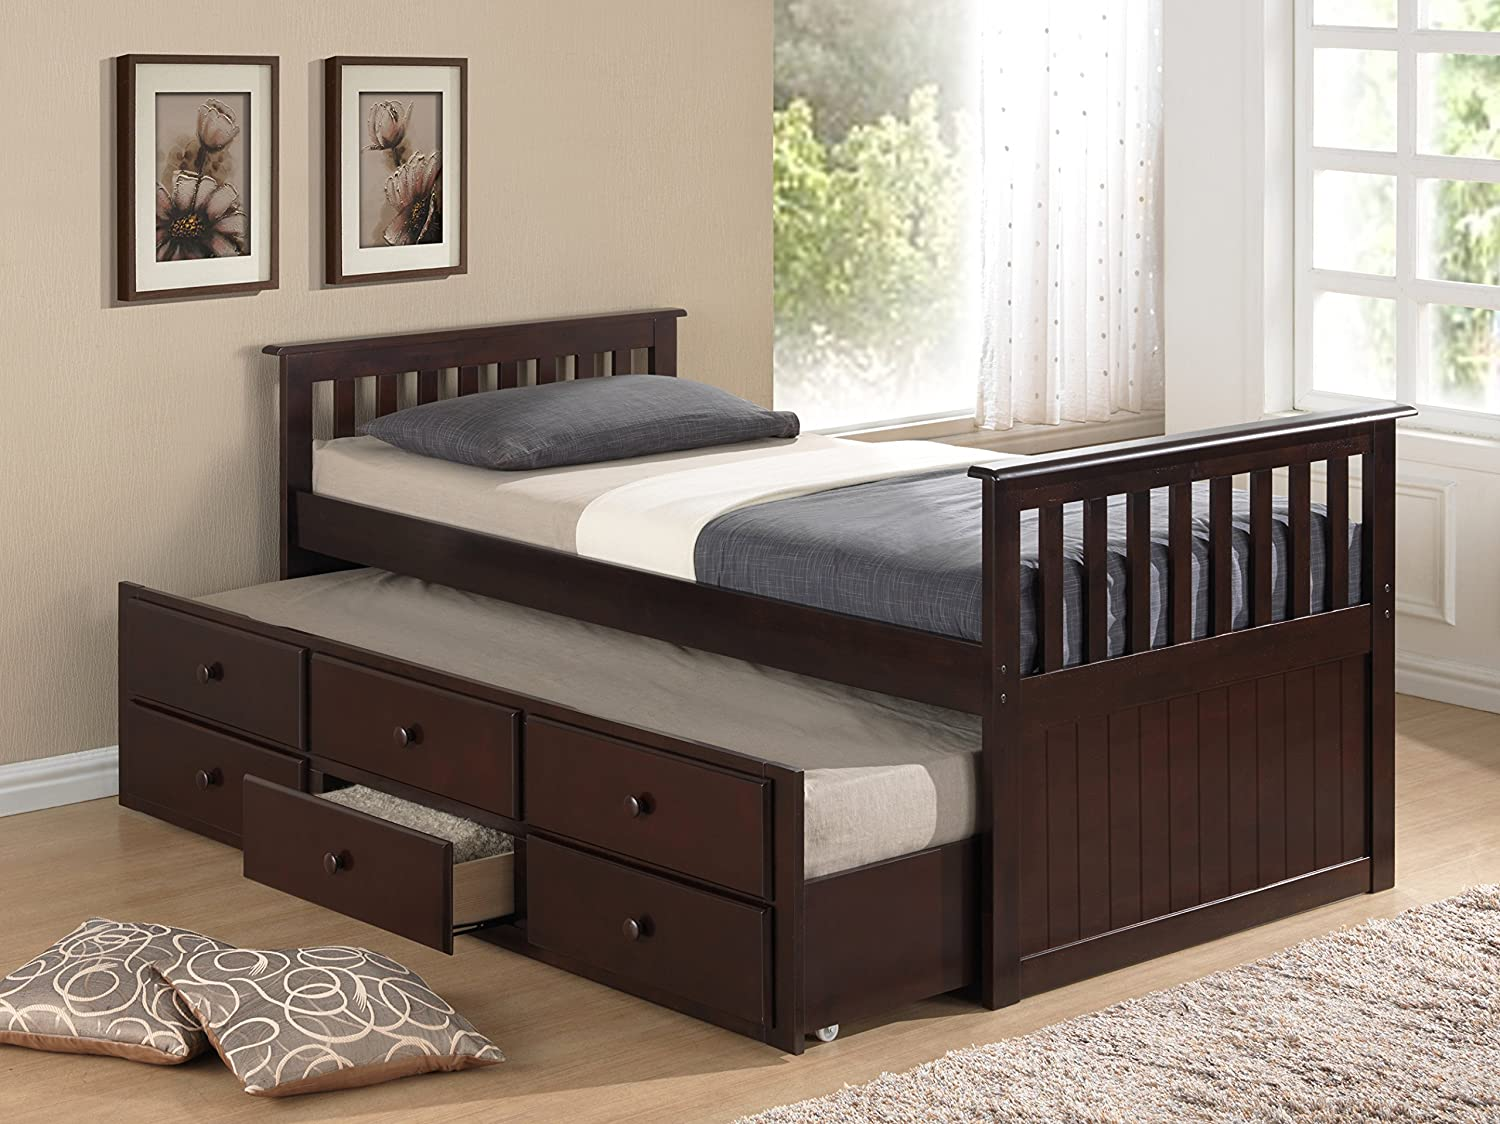 Amazon com broyhill kids marco island captains bed with trundle bed and drawers twin espresso twin sized mattress not included bunk bed alternative